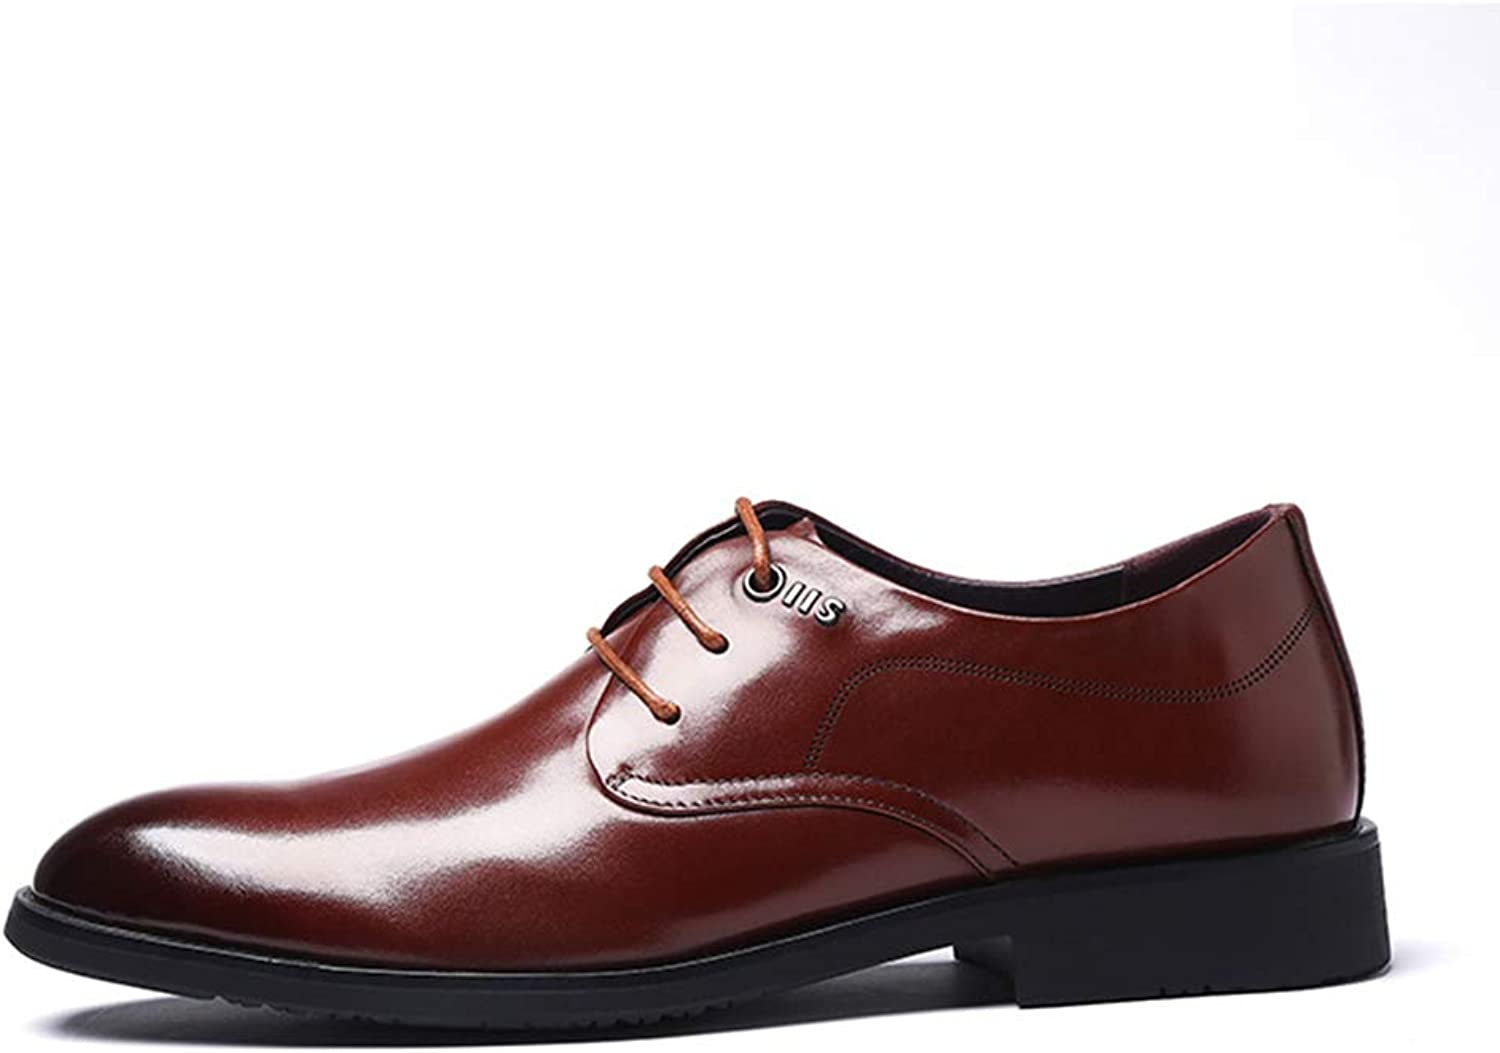 LXLA- Mens Business Formal Leather shoes, Wedding Comfortable Derby shoes Lace Up Dress Loafers for Men